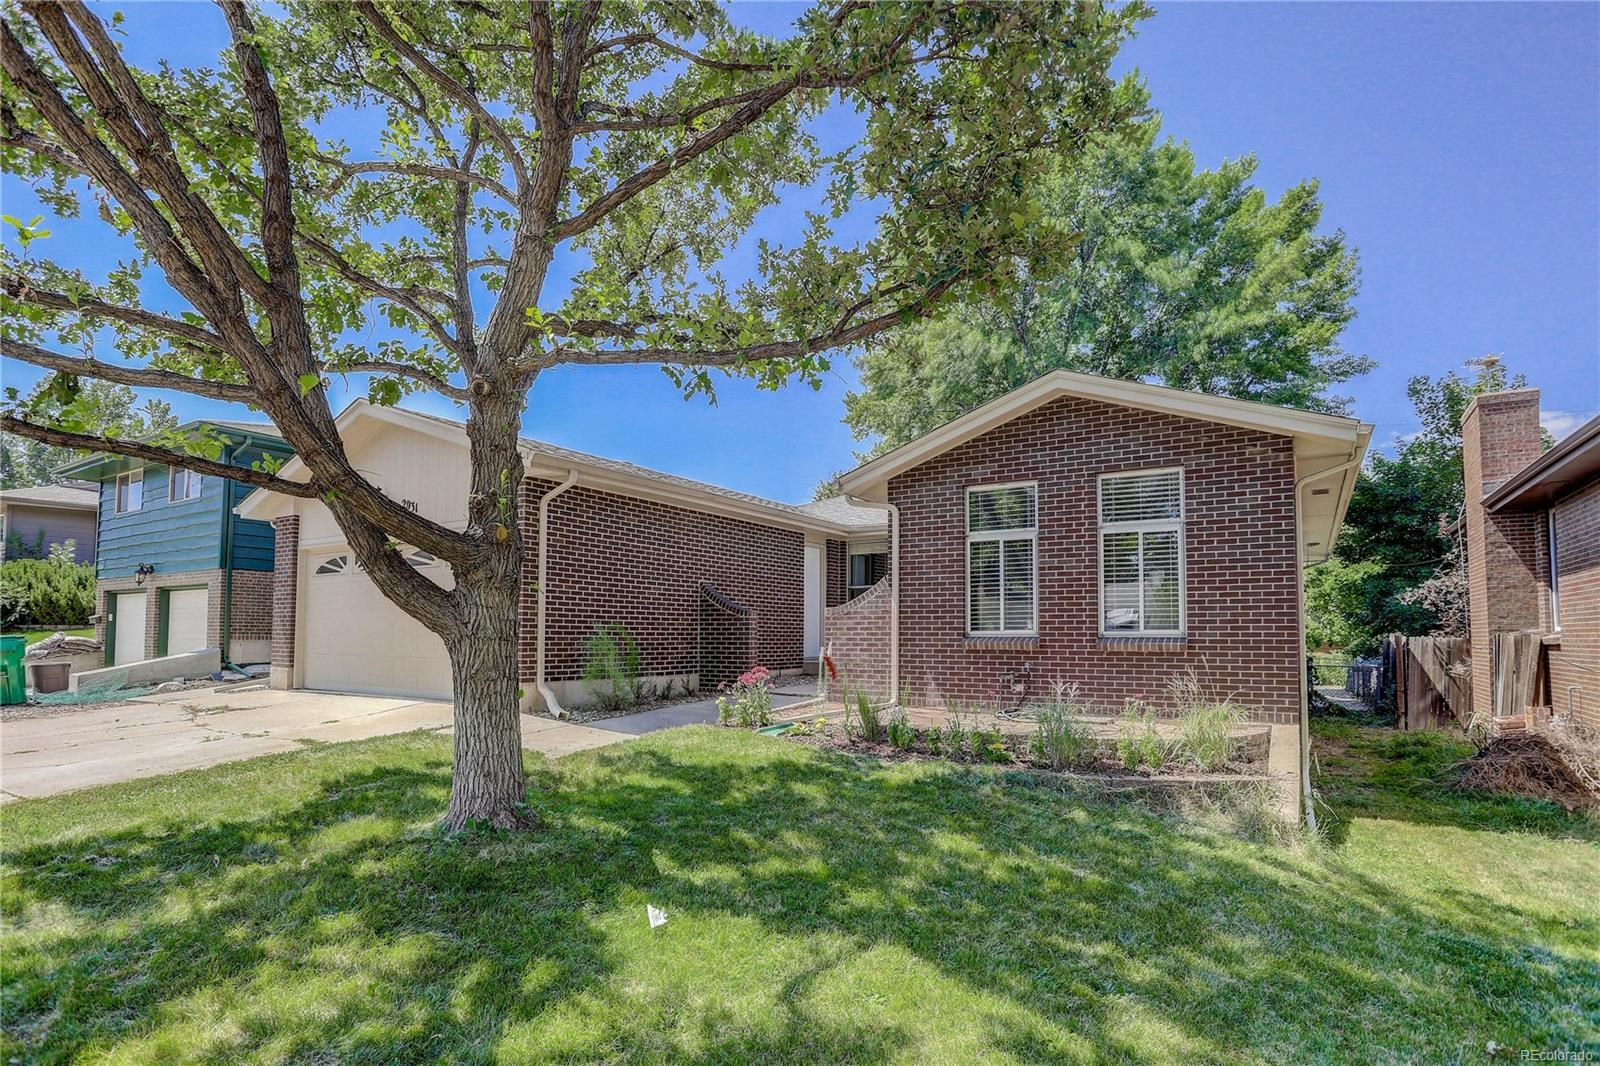 MLS# 2968148 - 1 - 2931 S Downing Street, Englewood, CO 80113